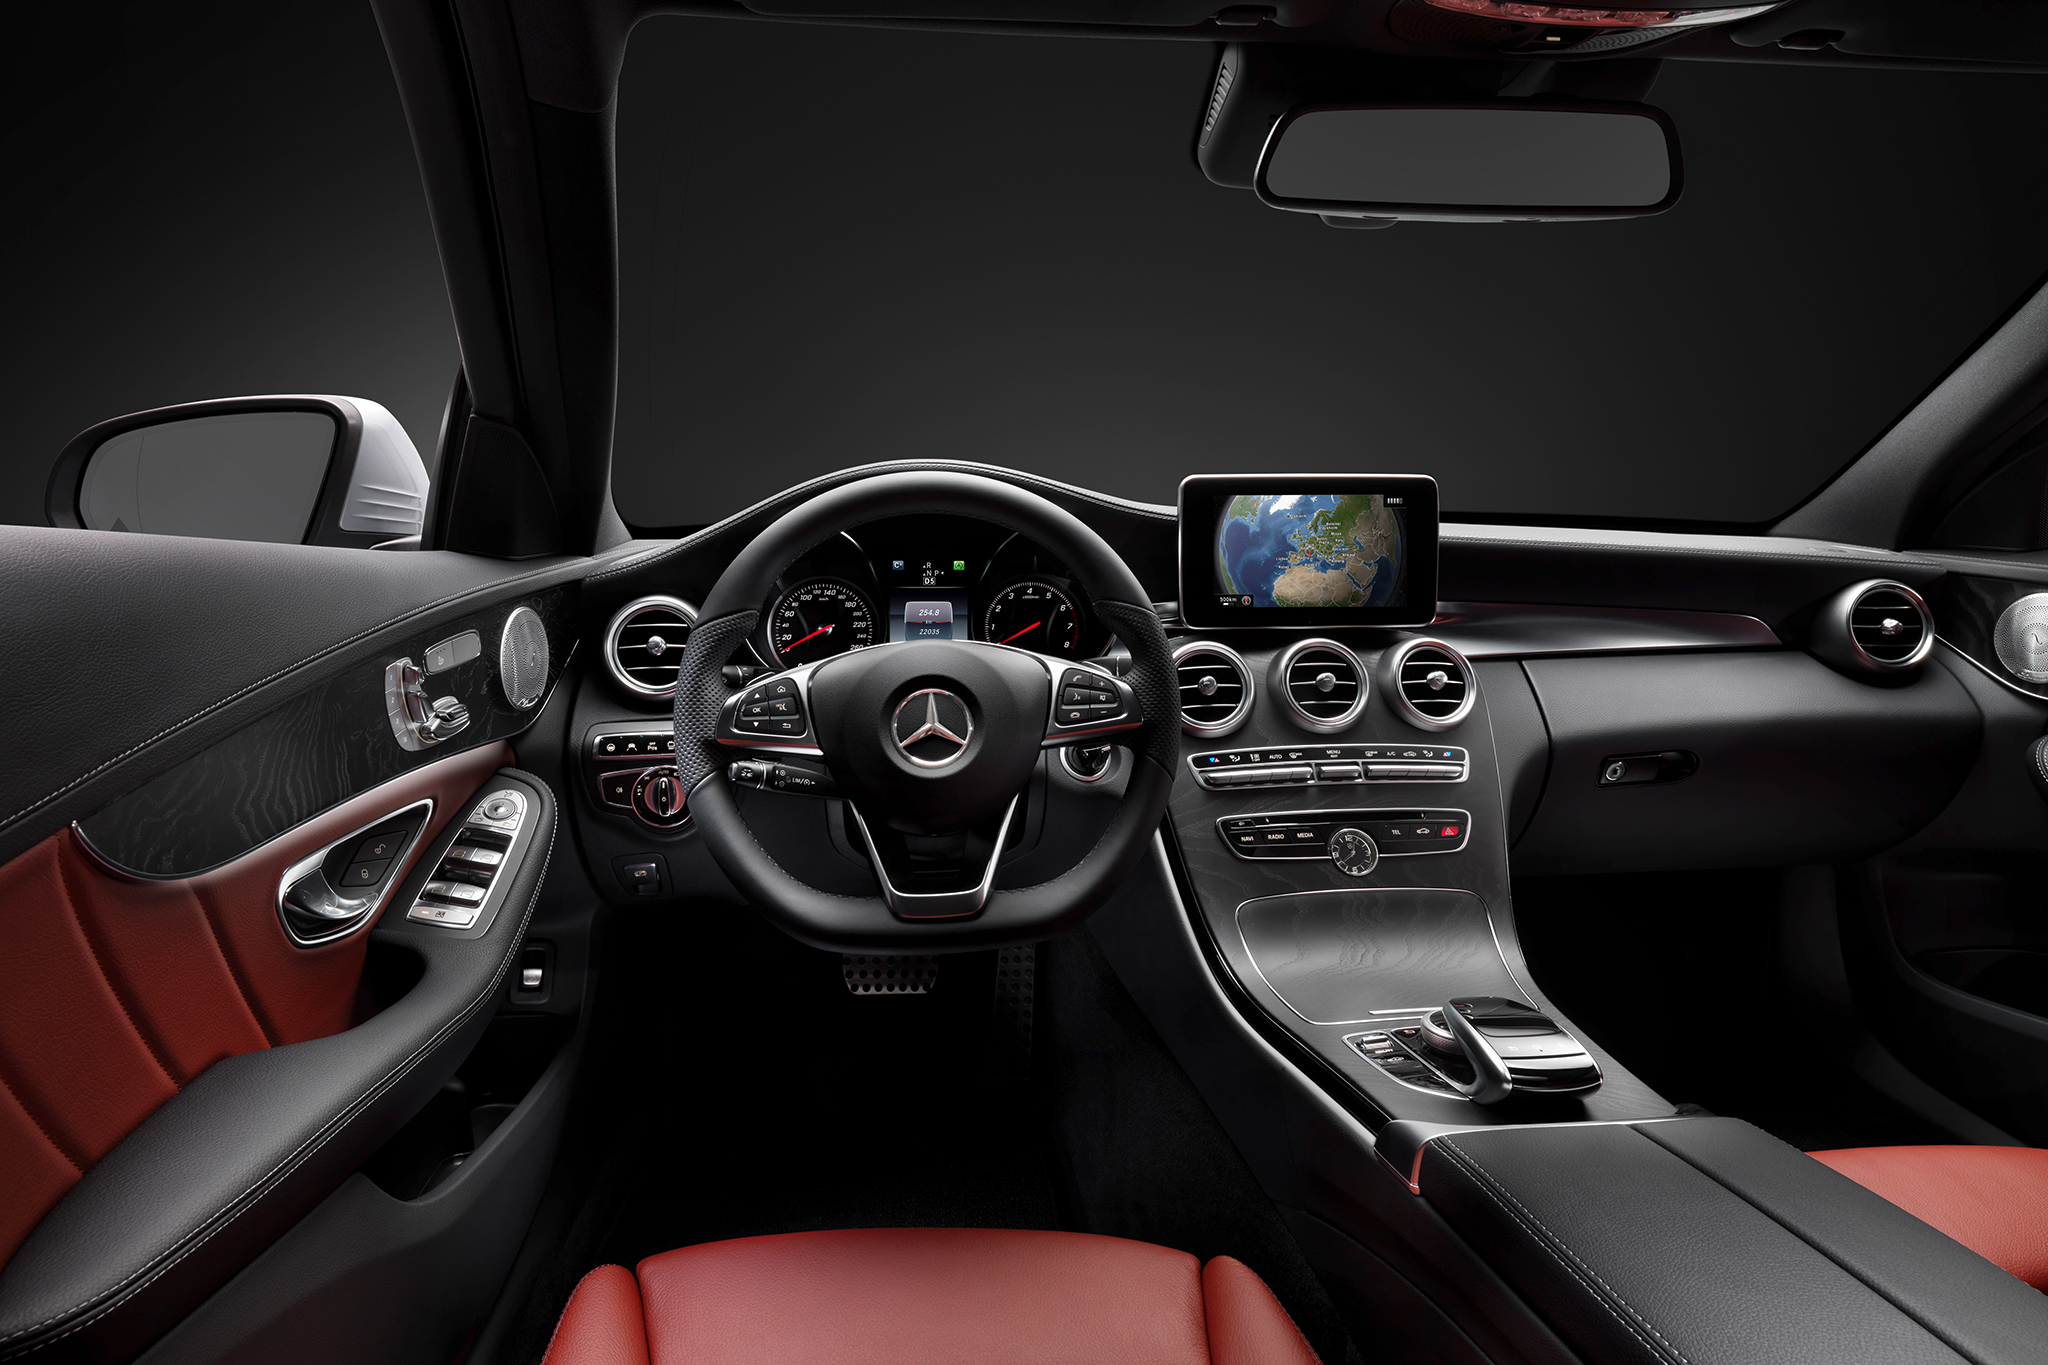 2015 Mercedes-Benz S-Class Coupe Cockpit View